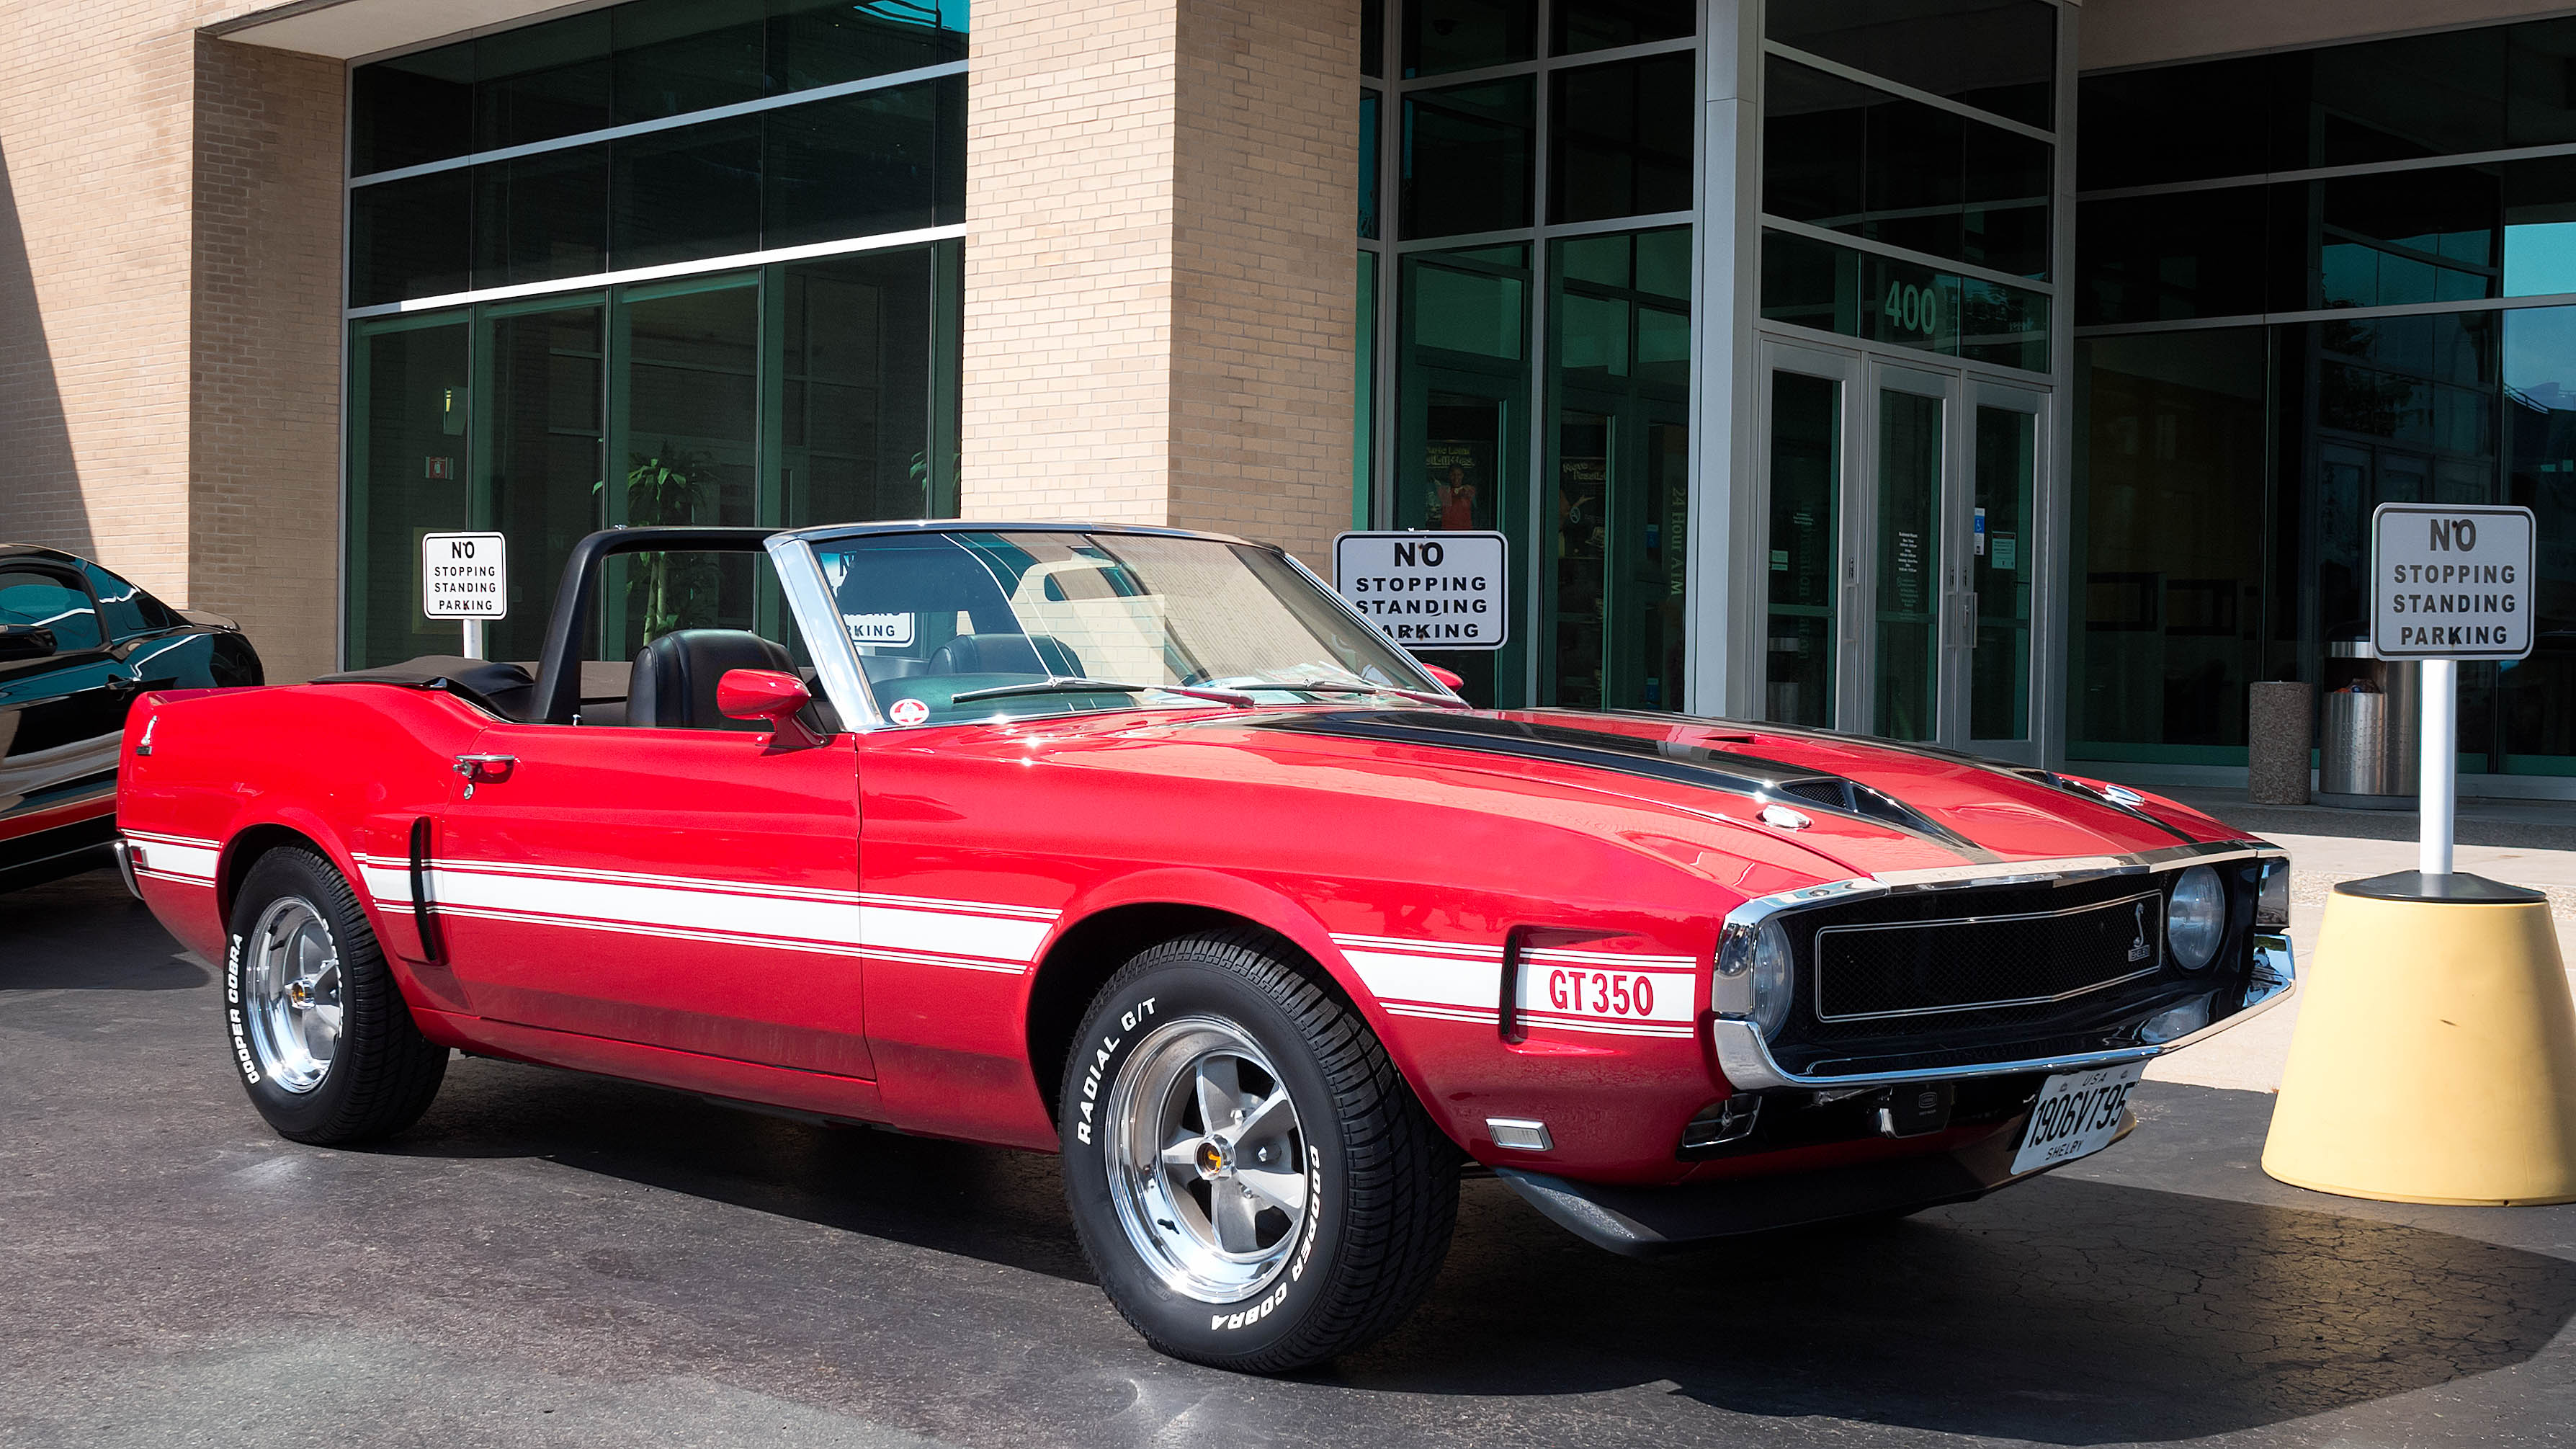 1970 Ford Shelby GT350 Convertible, Car, Other Keywords, Vehicle, United states, HQ Photo